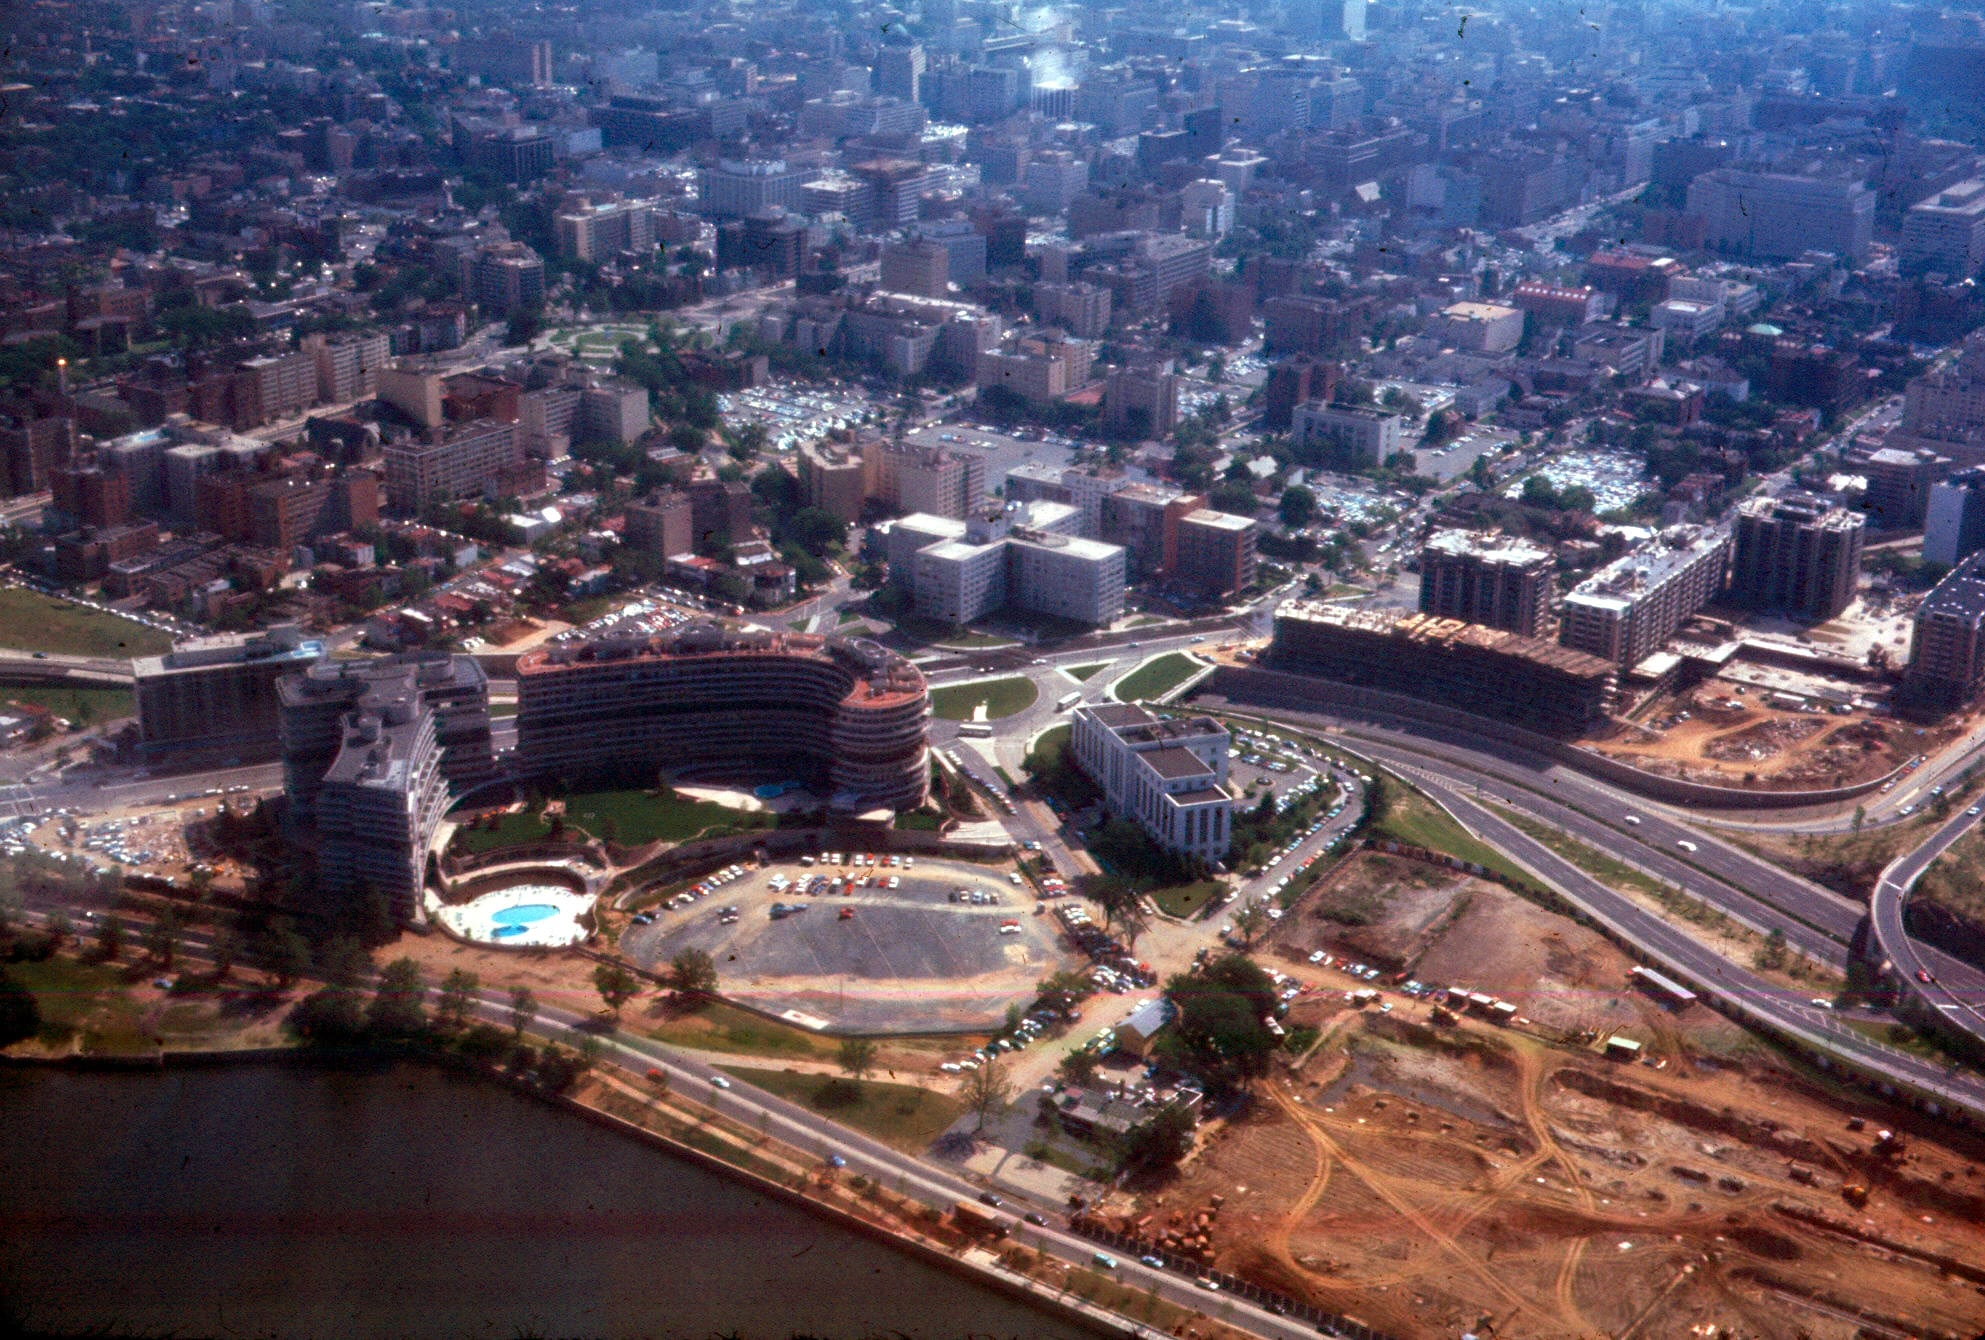 Amazing Photo of Watergate and Kennedy Center Construction from the Air